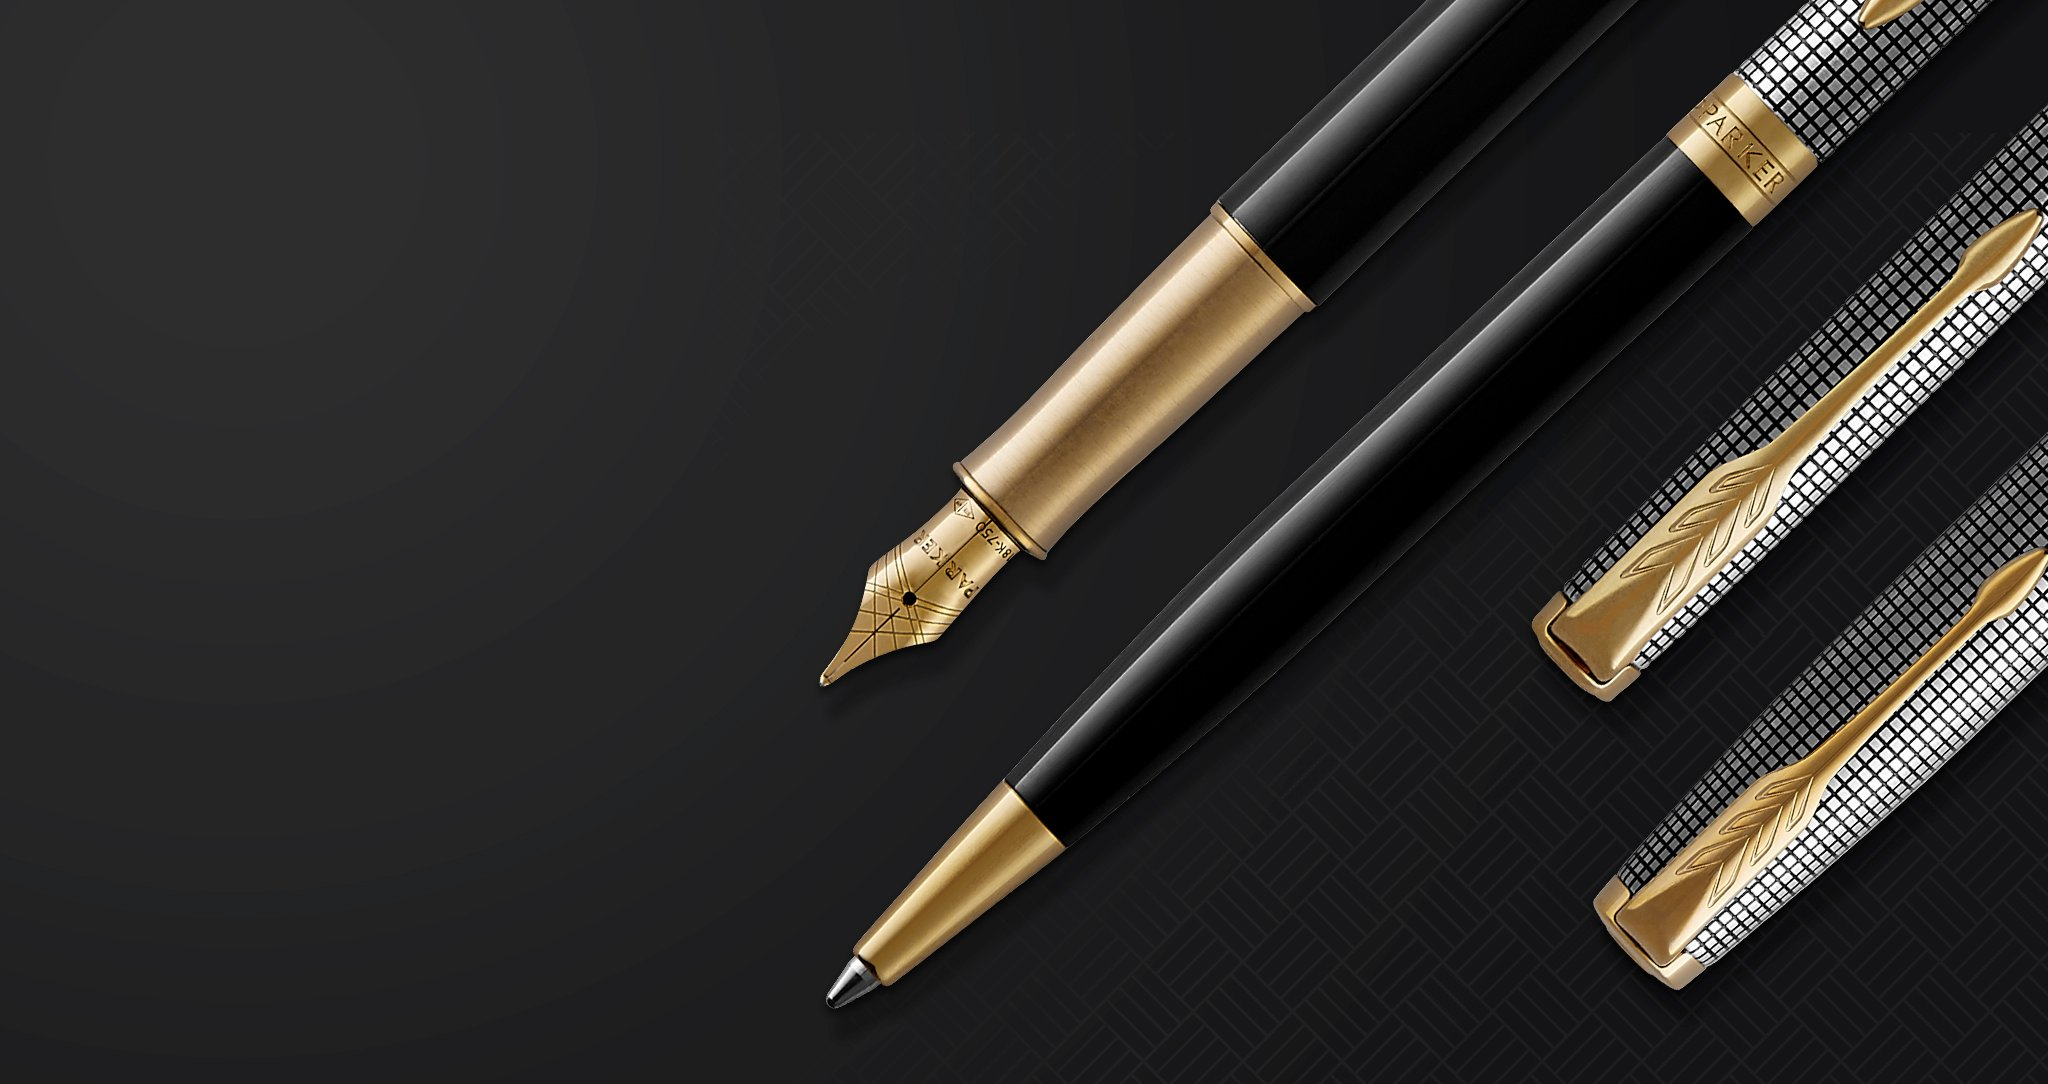 smoothest writing pen Read smoothest writing pens reviews and buy the best smoothest writing pens at low price from china on dhgate, compare smoothest writing pens by ratings, prices.